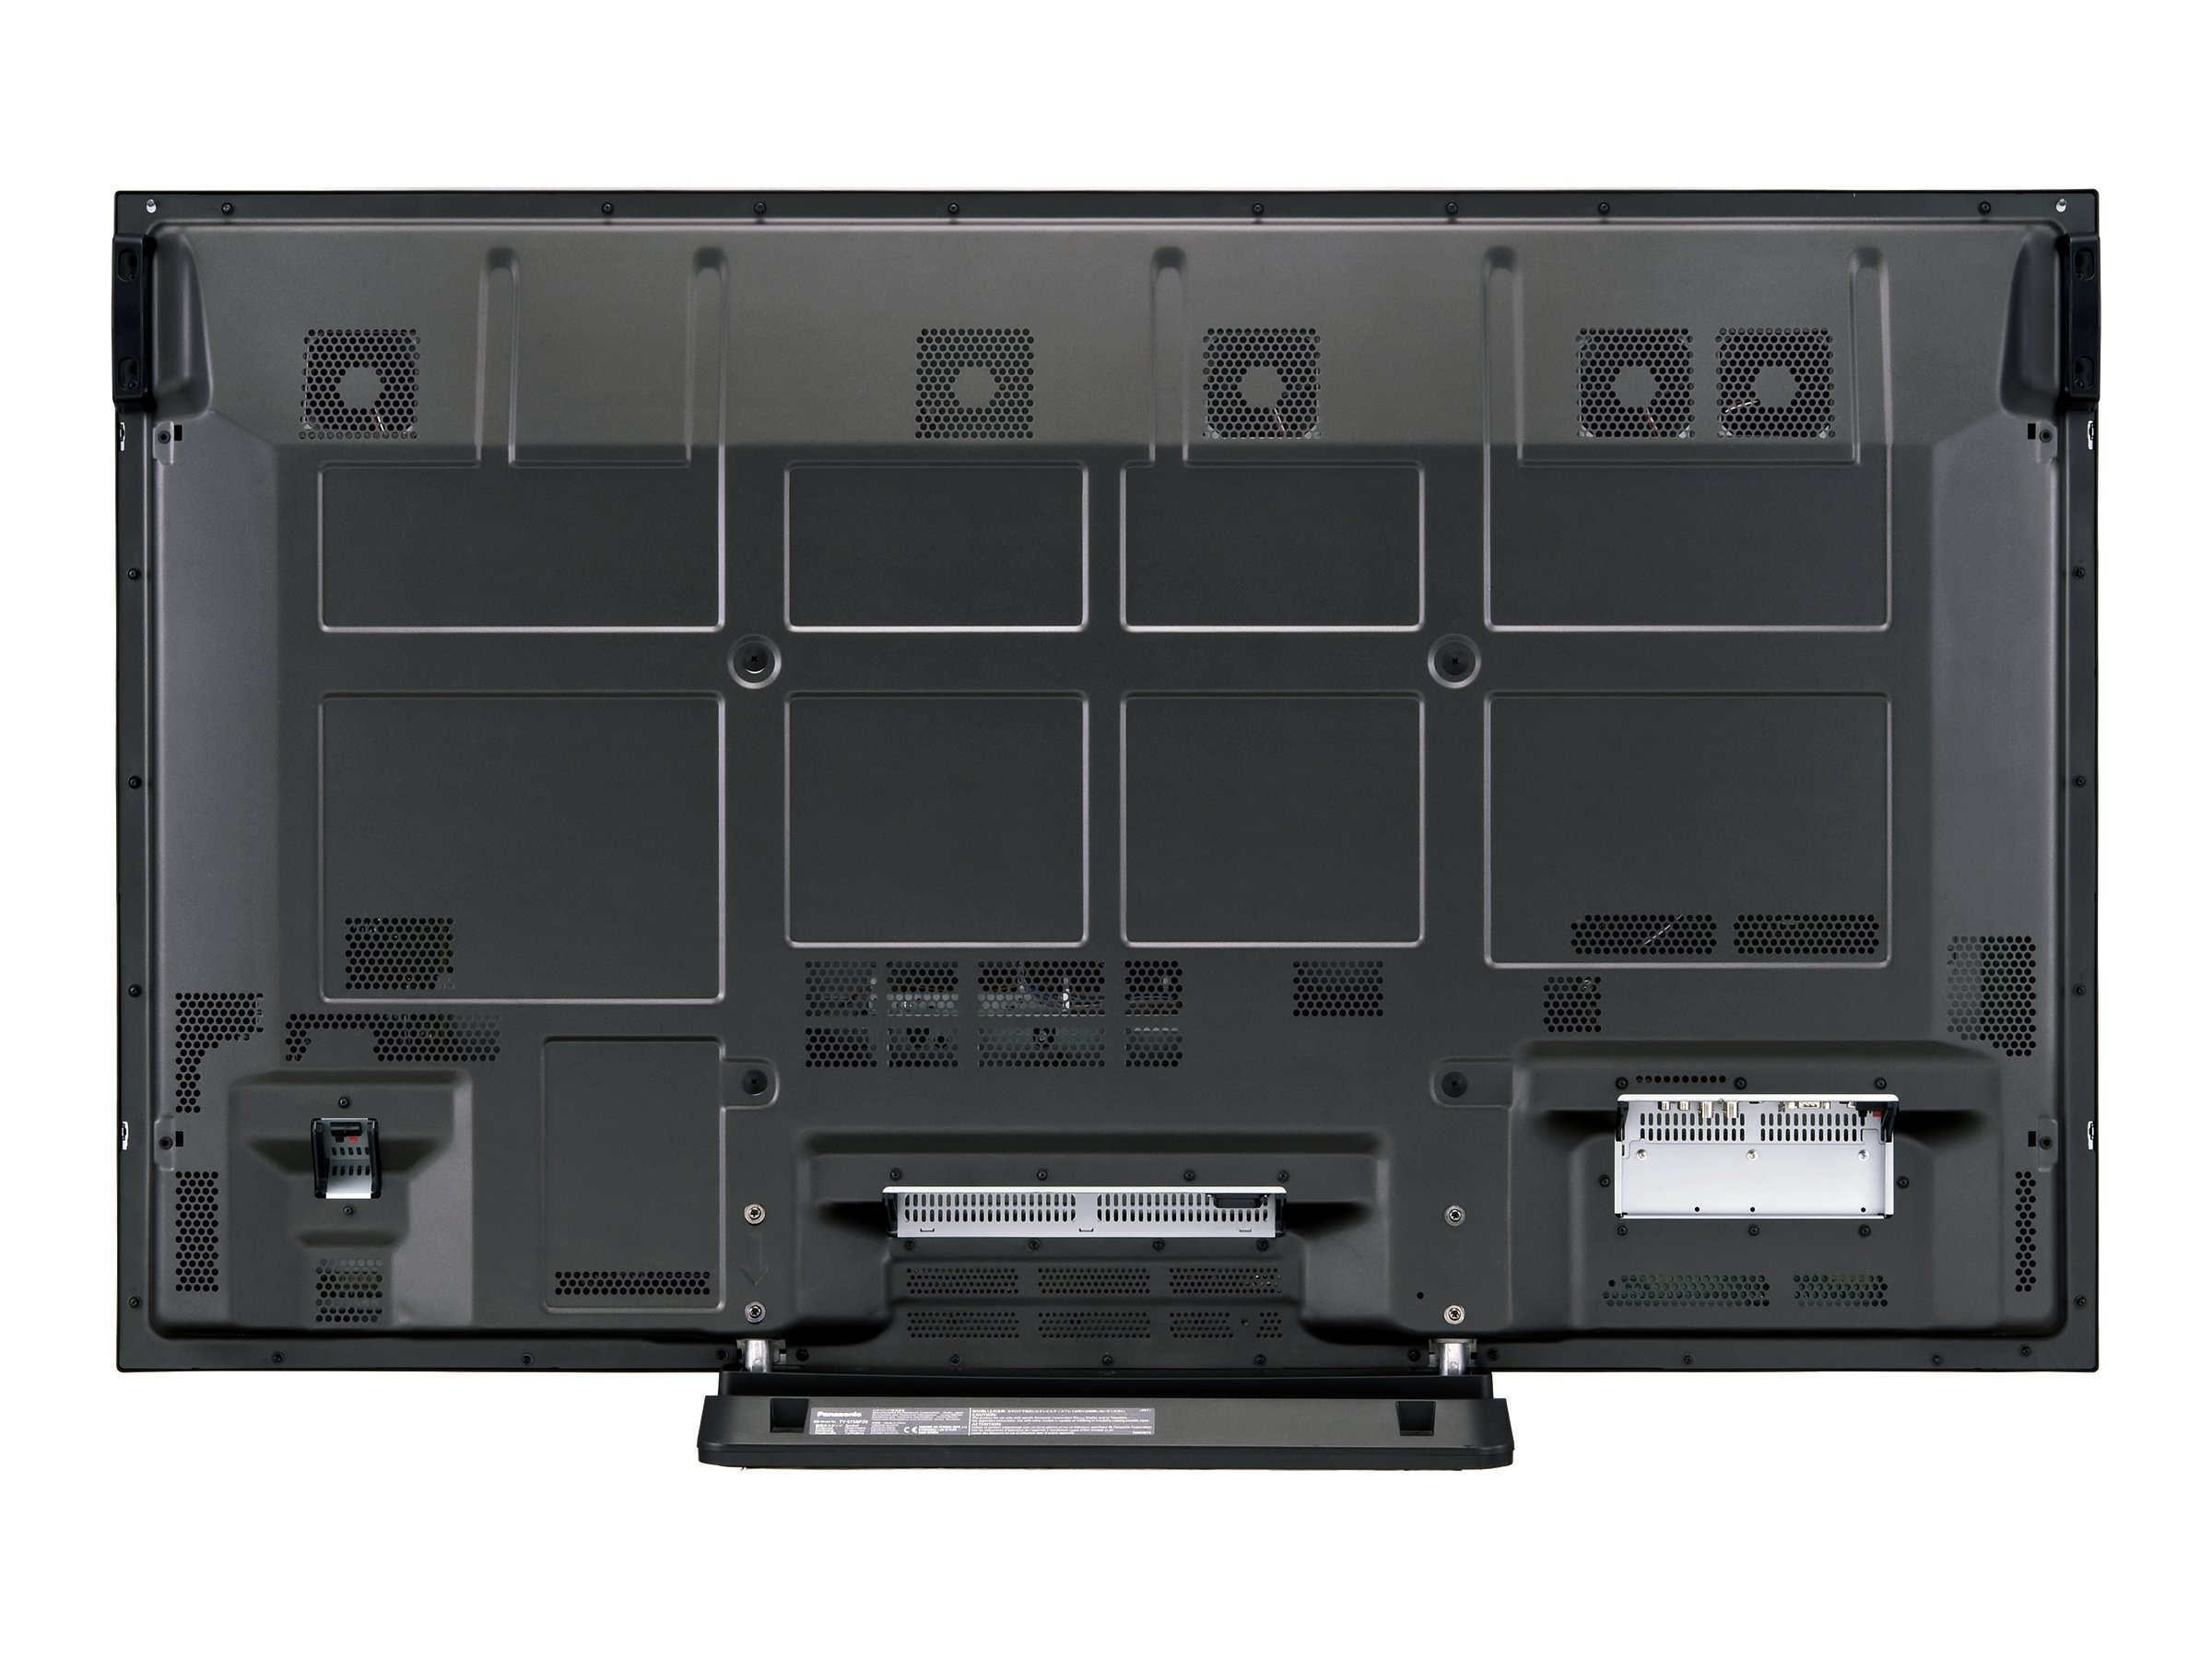 Panasonic TH60PF30U Image 4